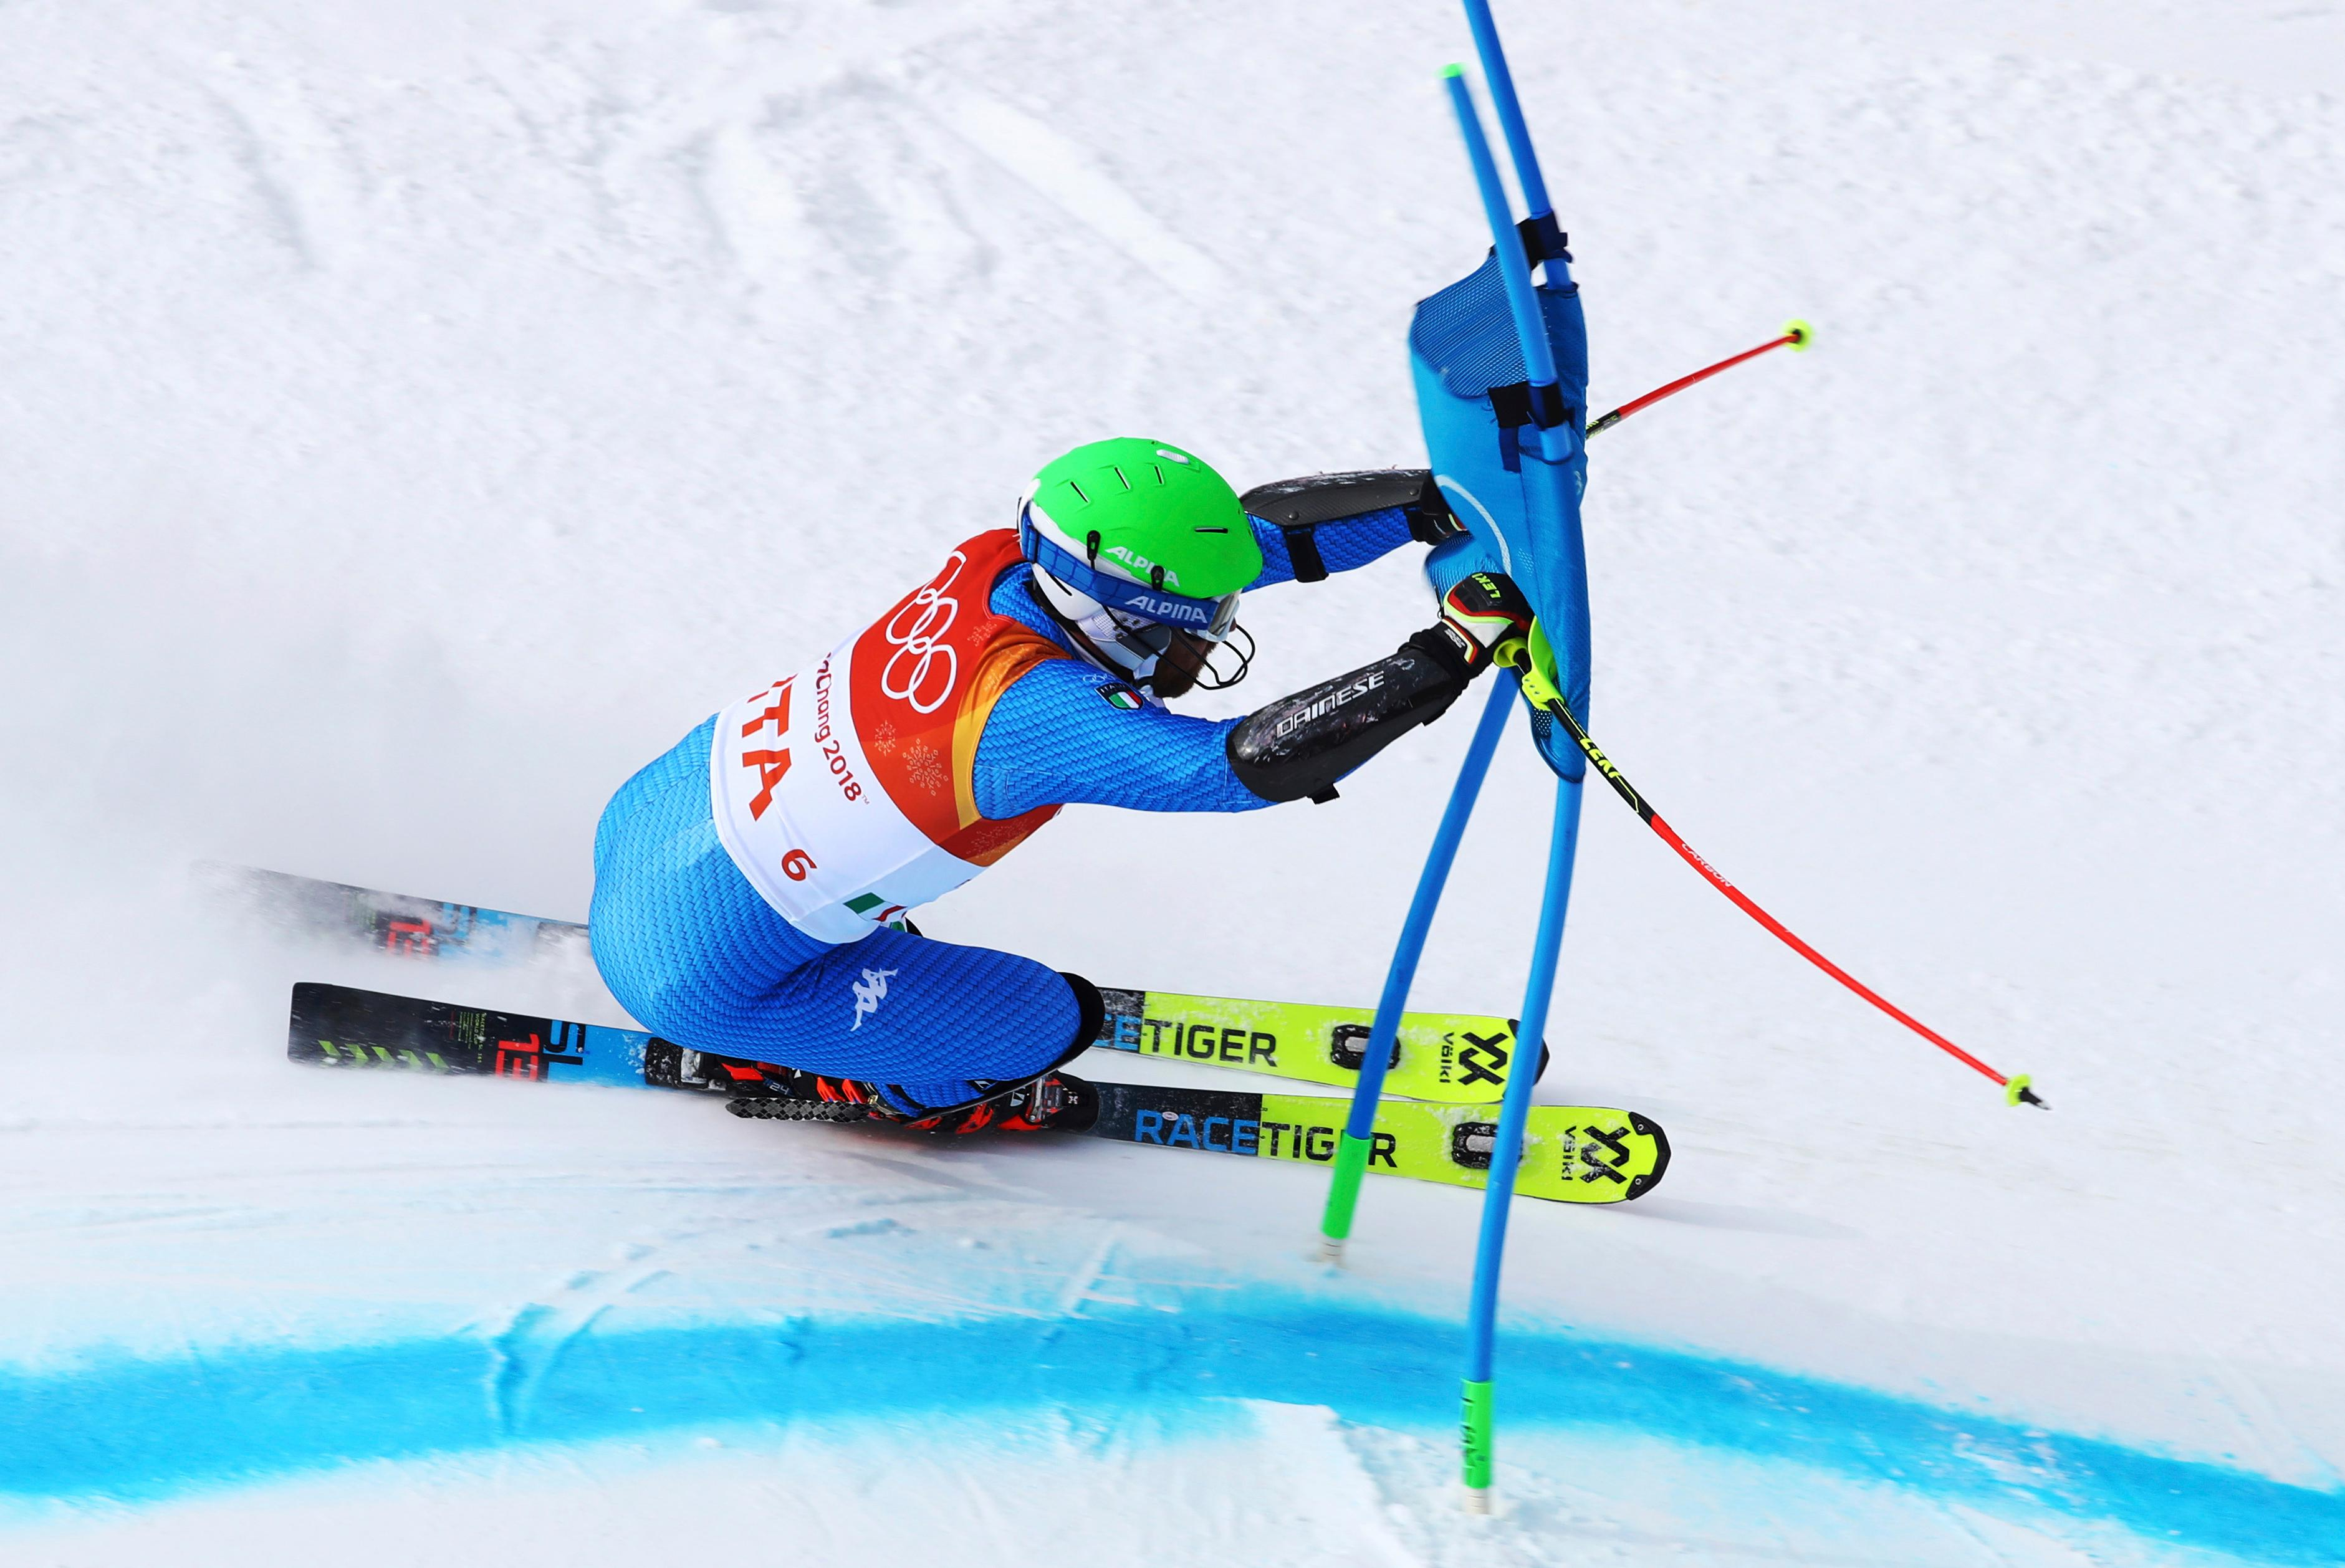 Italy's Riccardo Tonetti skis during the alpine team event at the 2018 Winter Olympics in Pyeongchang, South Korea, Saturday, Feb. 24, 2018. (AP Photo/Alessandro Trovati)